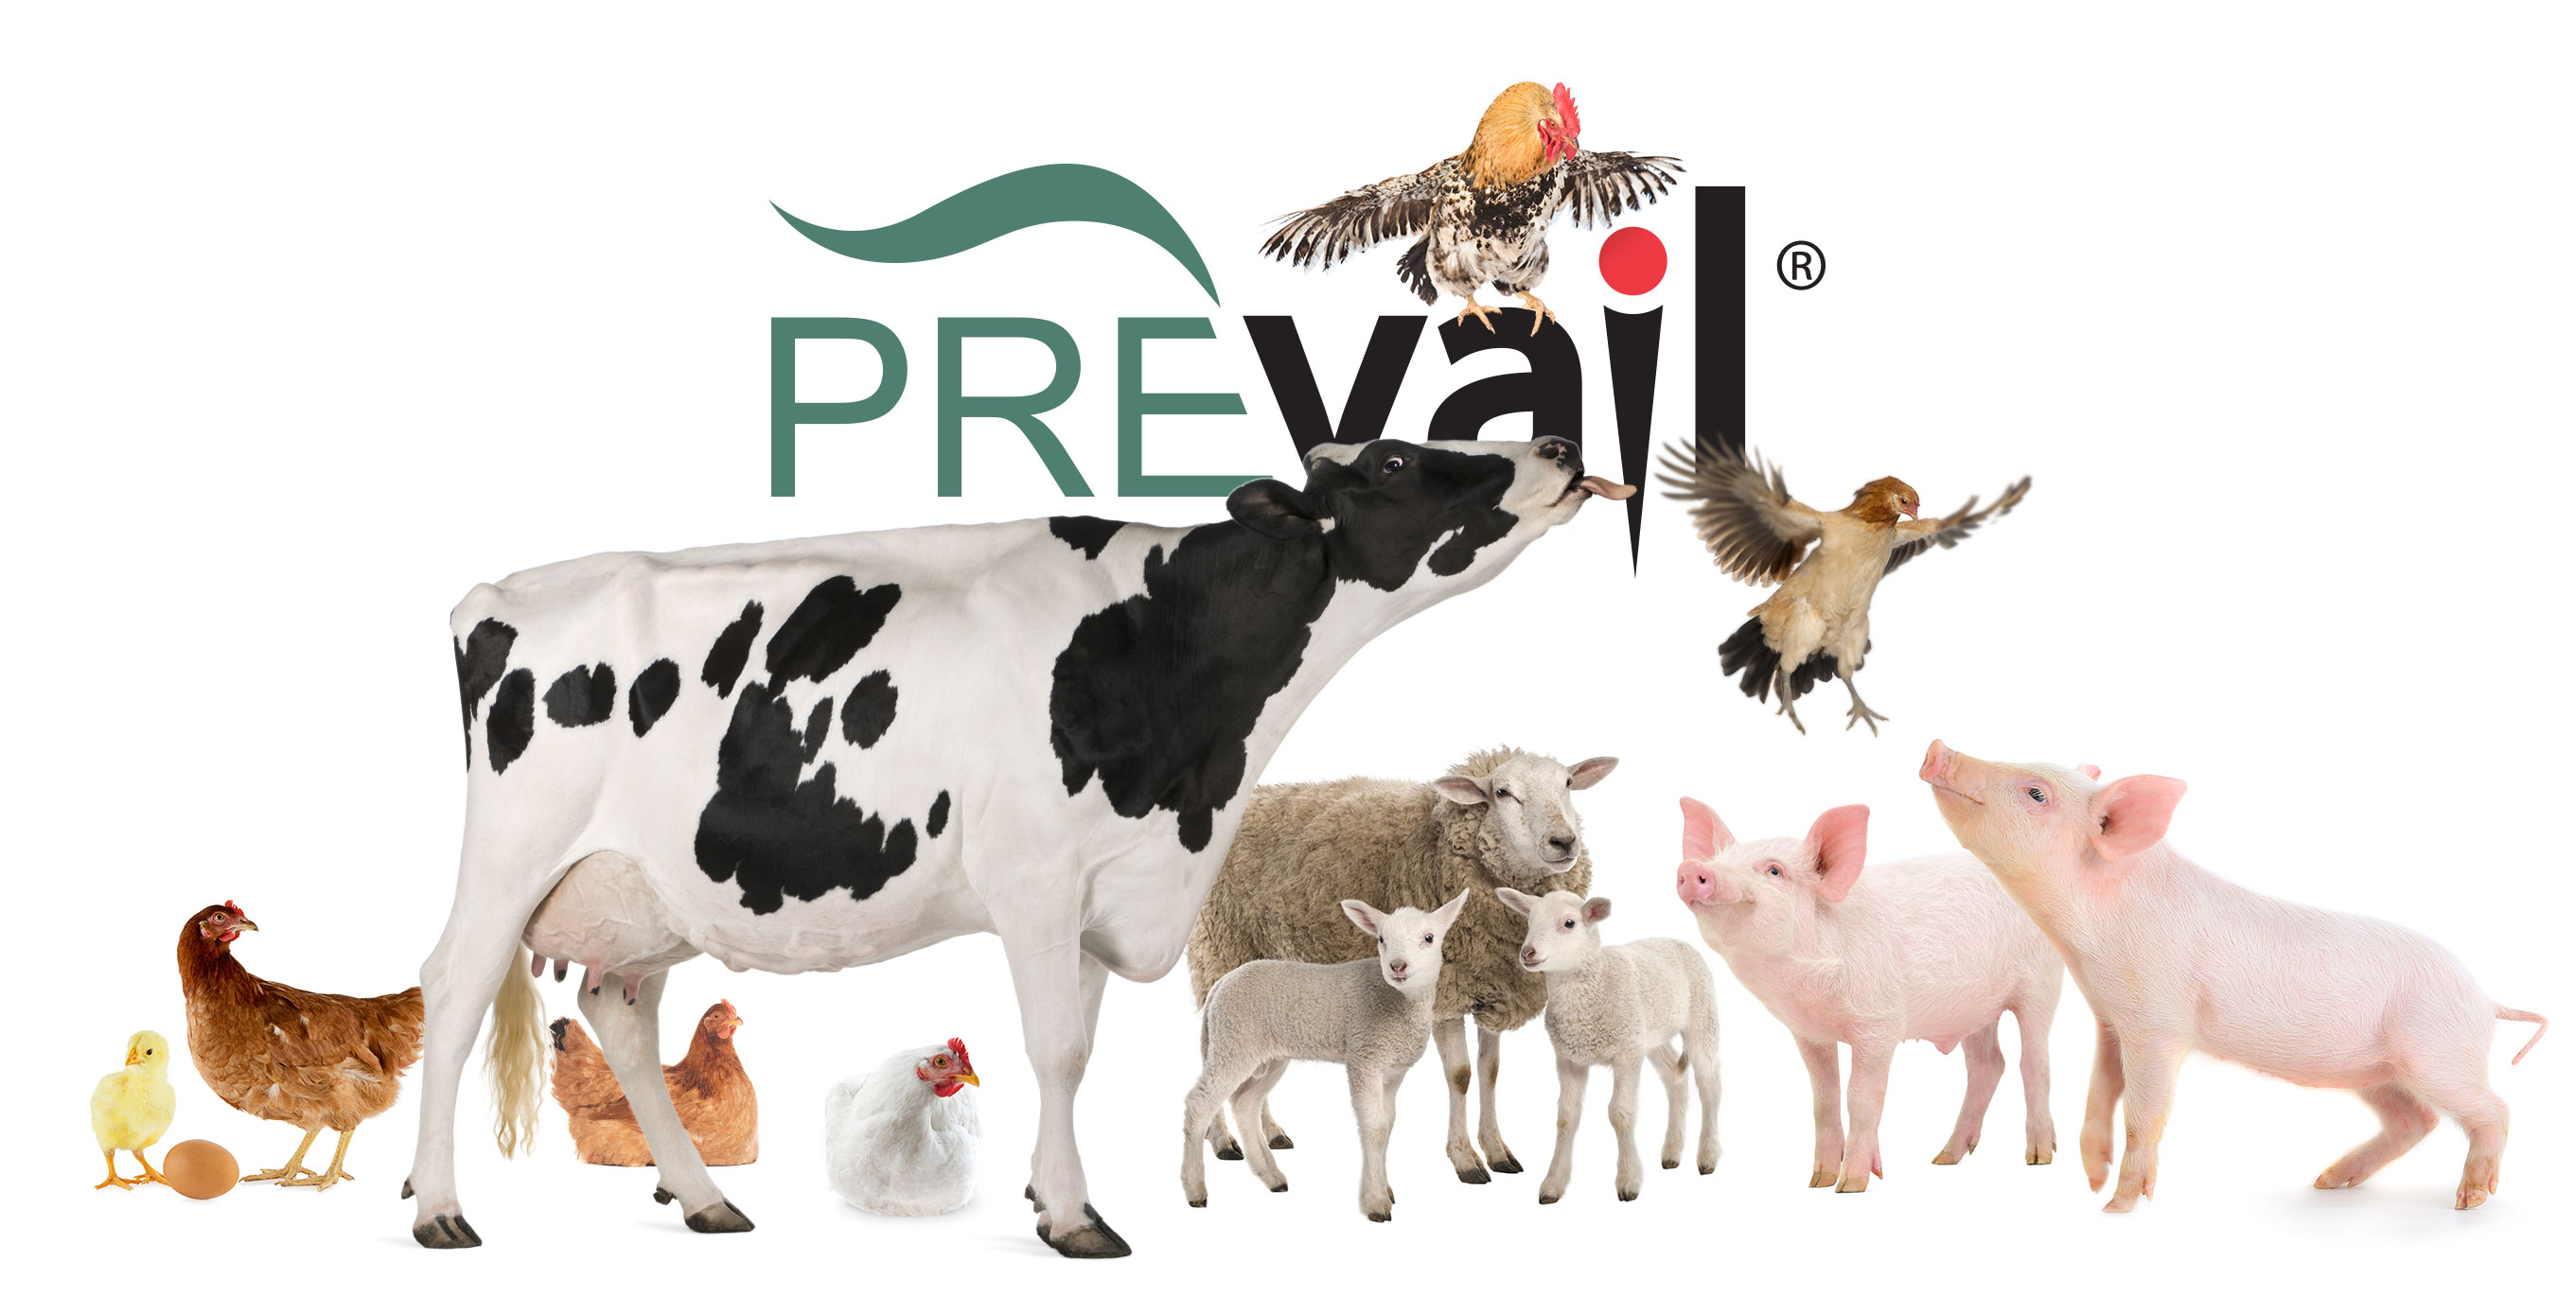 Header-Farm-Prevail-Family.jpg